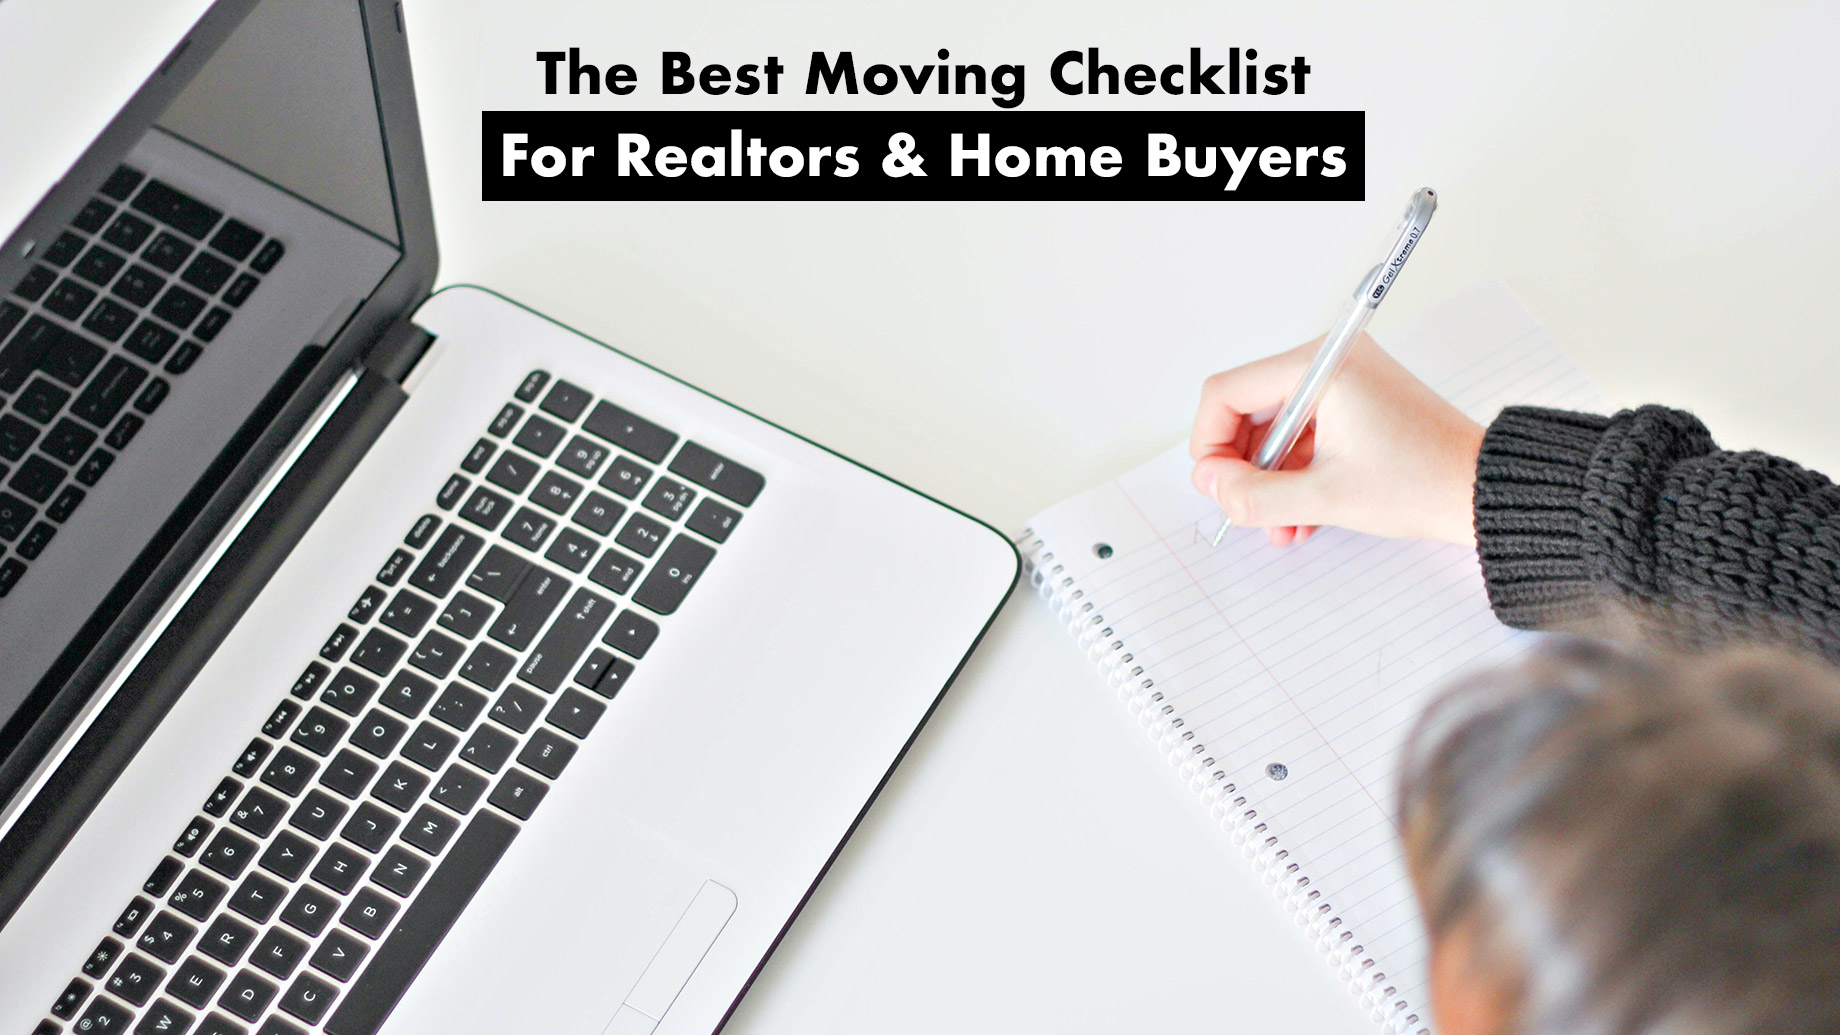 The Best Moving Checklist For Realtors & Home Buyers